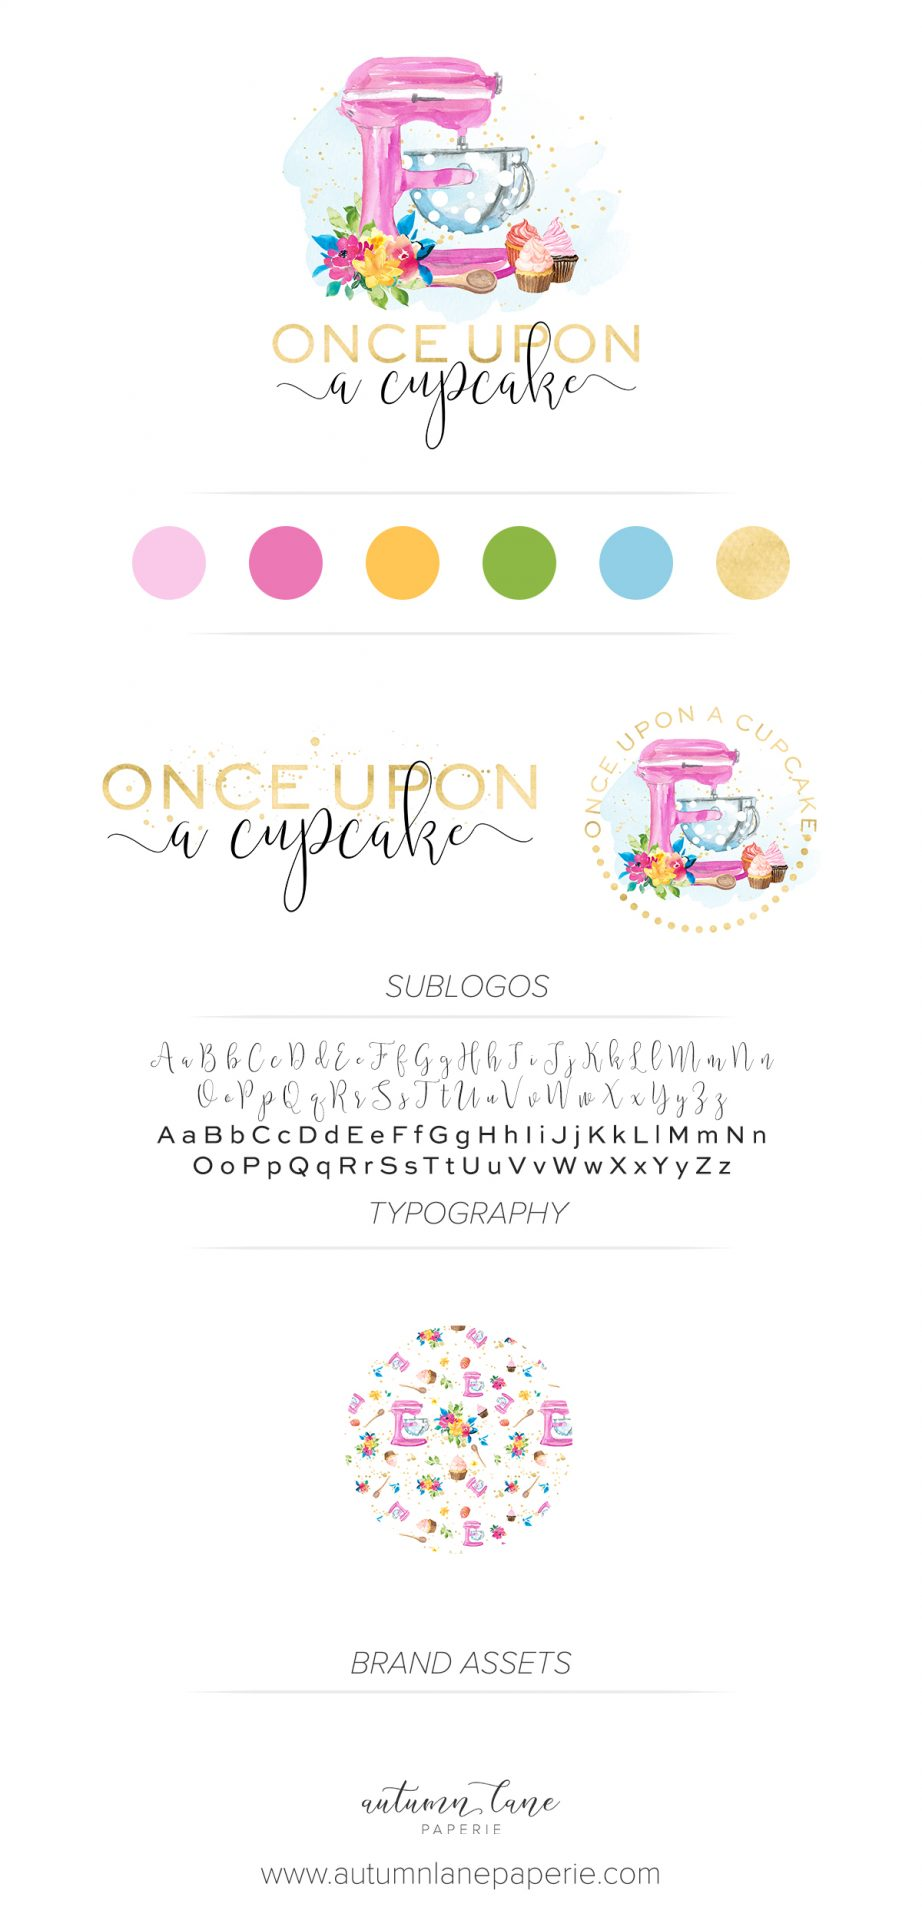 Once Upon a Cupcake brand board